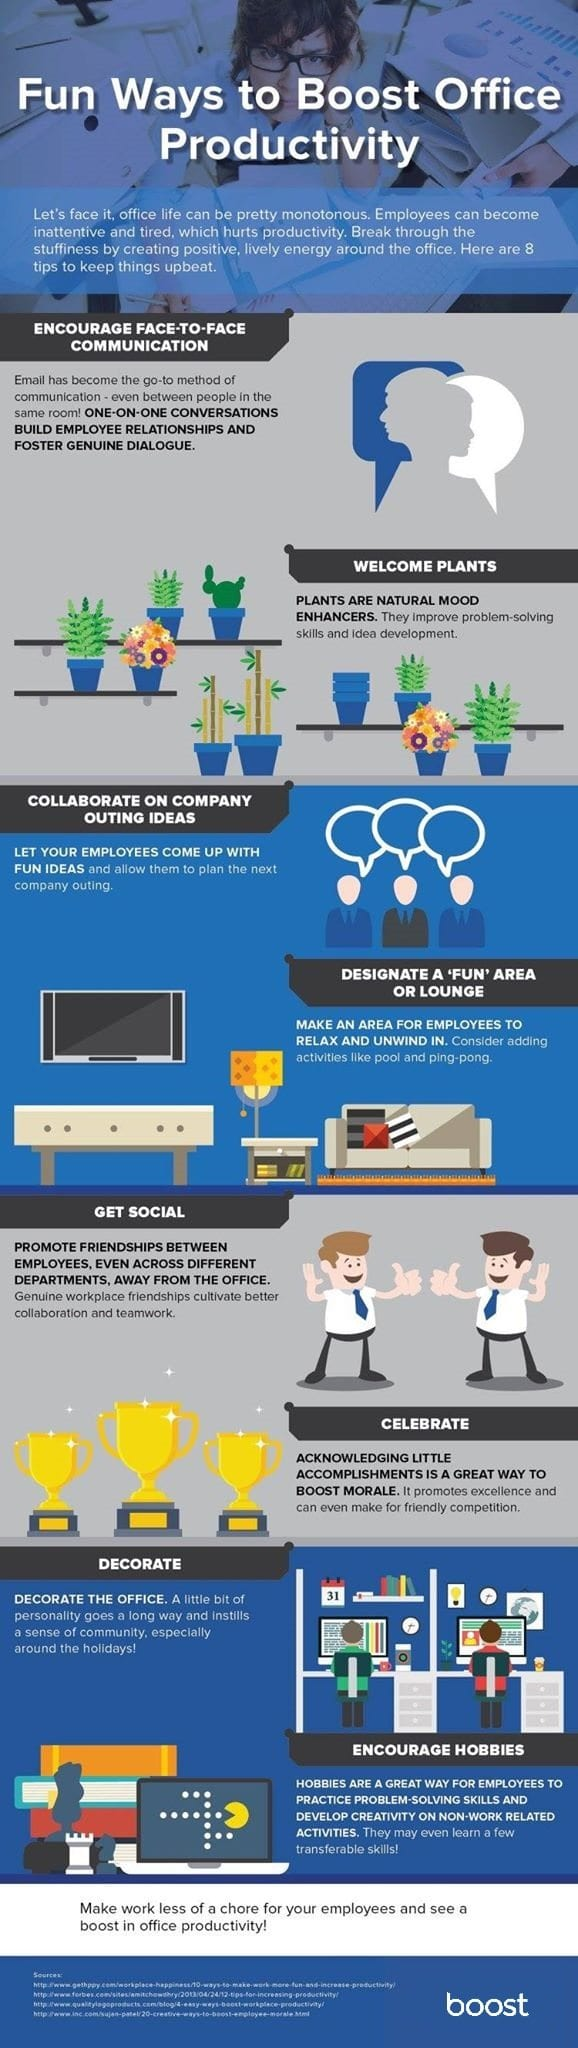 office productivity infographic